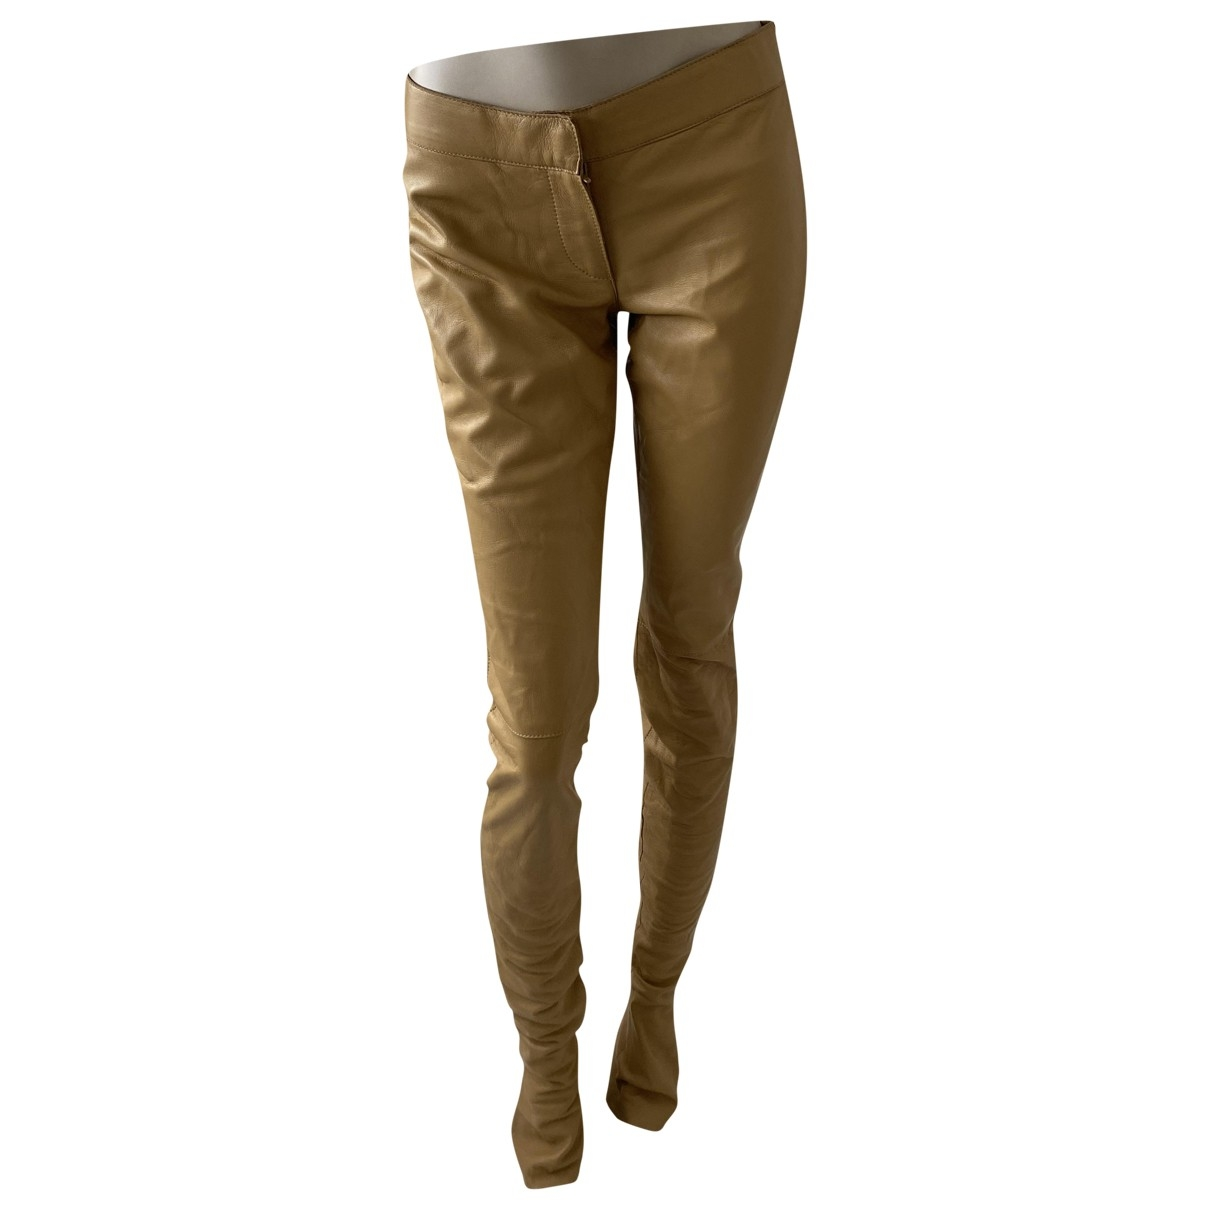 Dolce & Gabbana \N Camel Leather Trousers for Women 38 IT